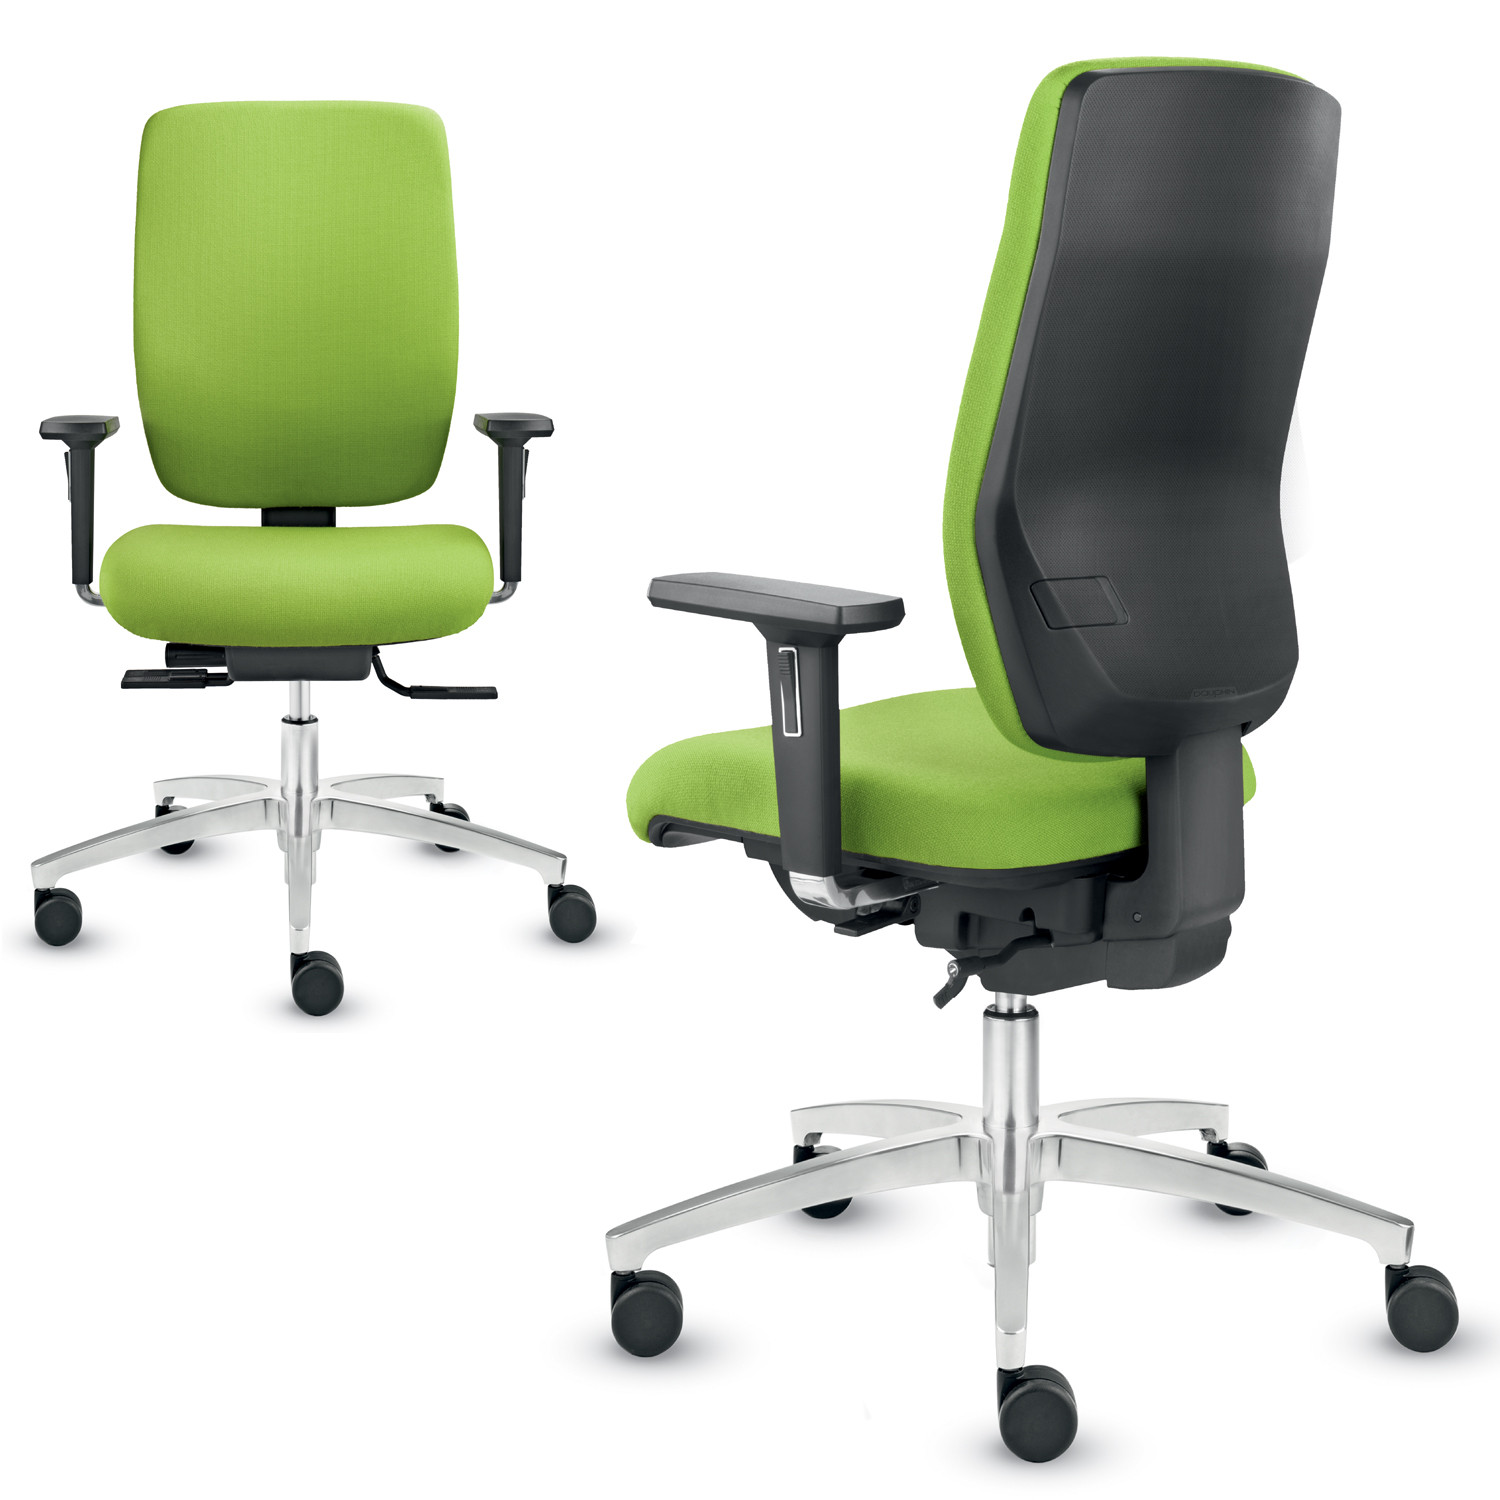 Shape Elan Chairs